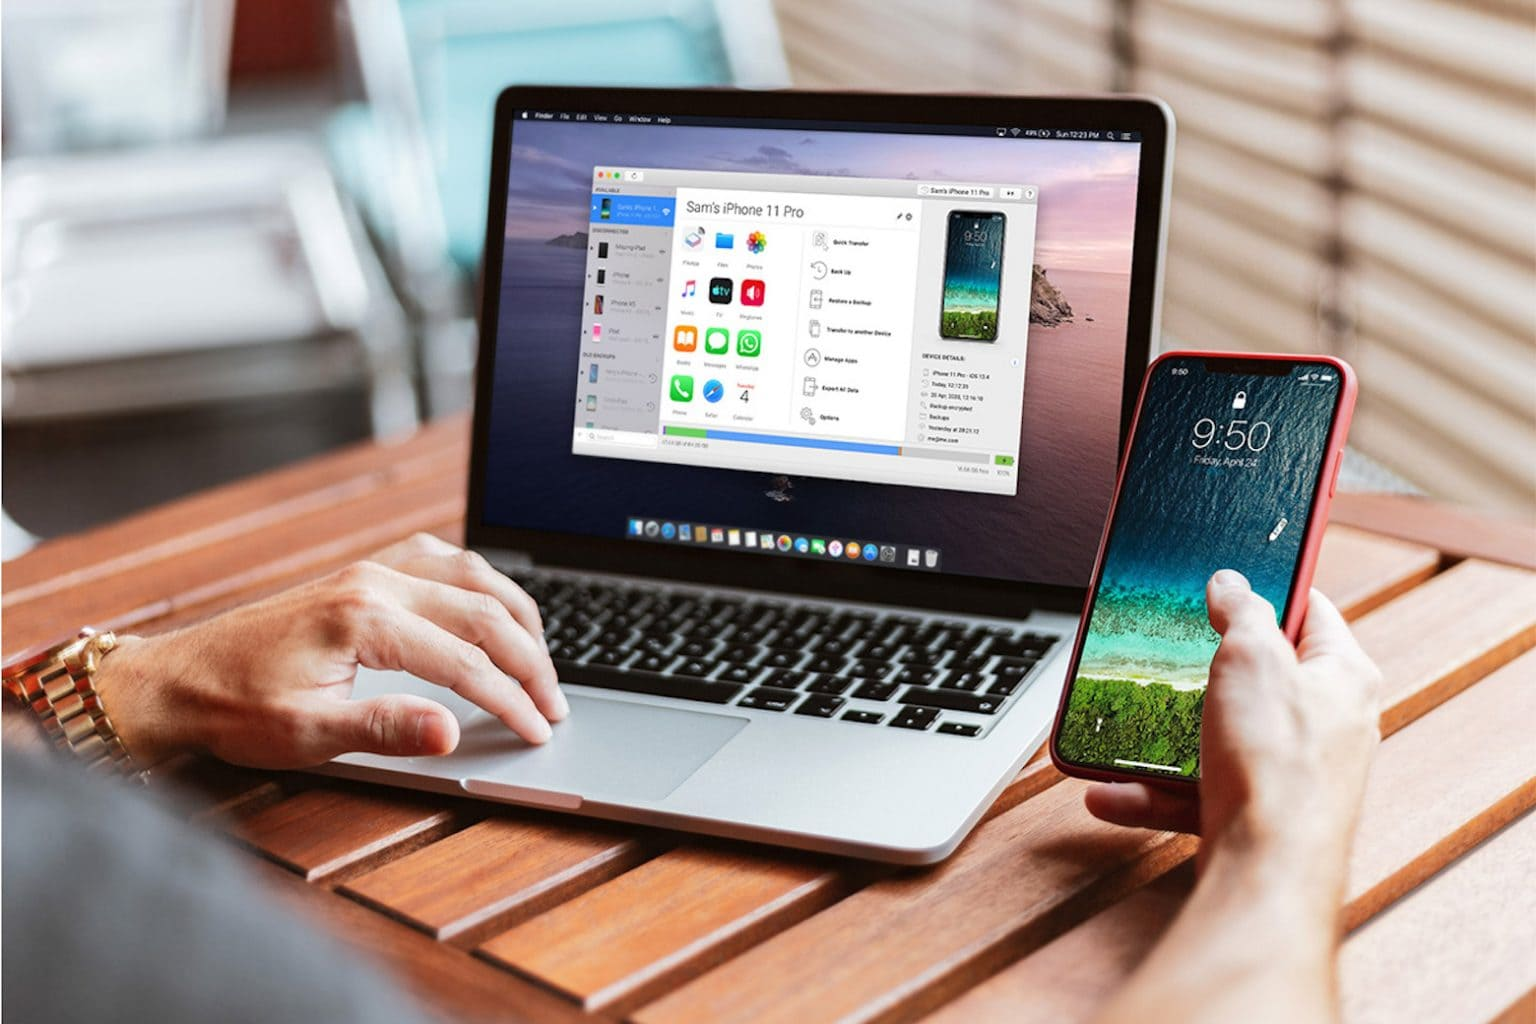 iMazing iOS device manager is a necessity for iPhone owners.